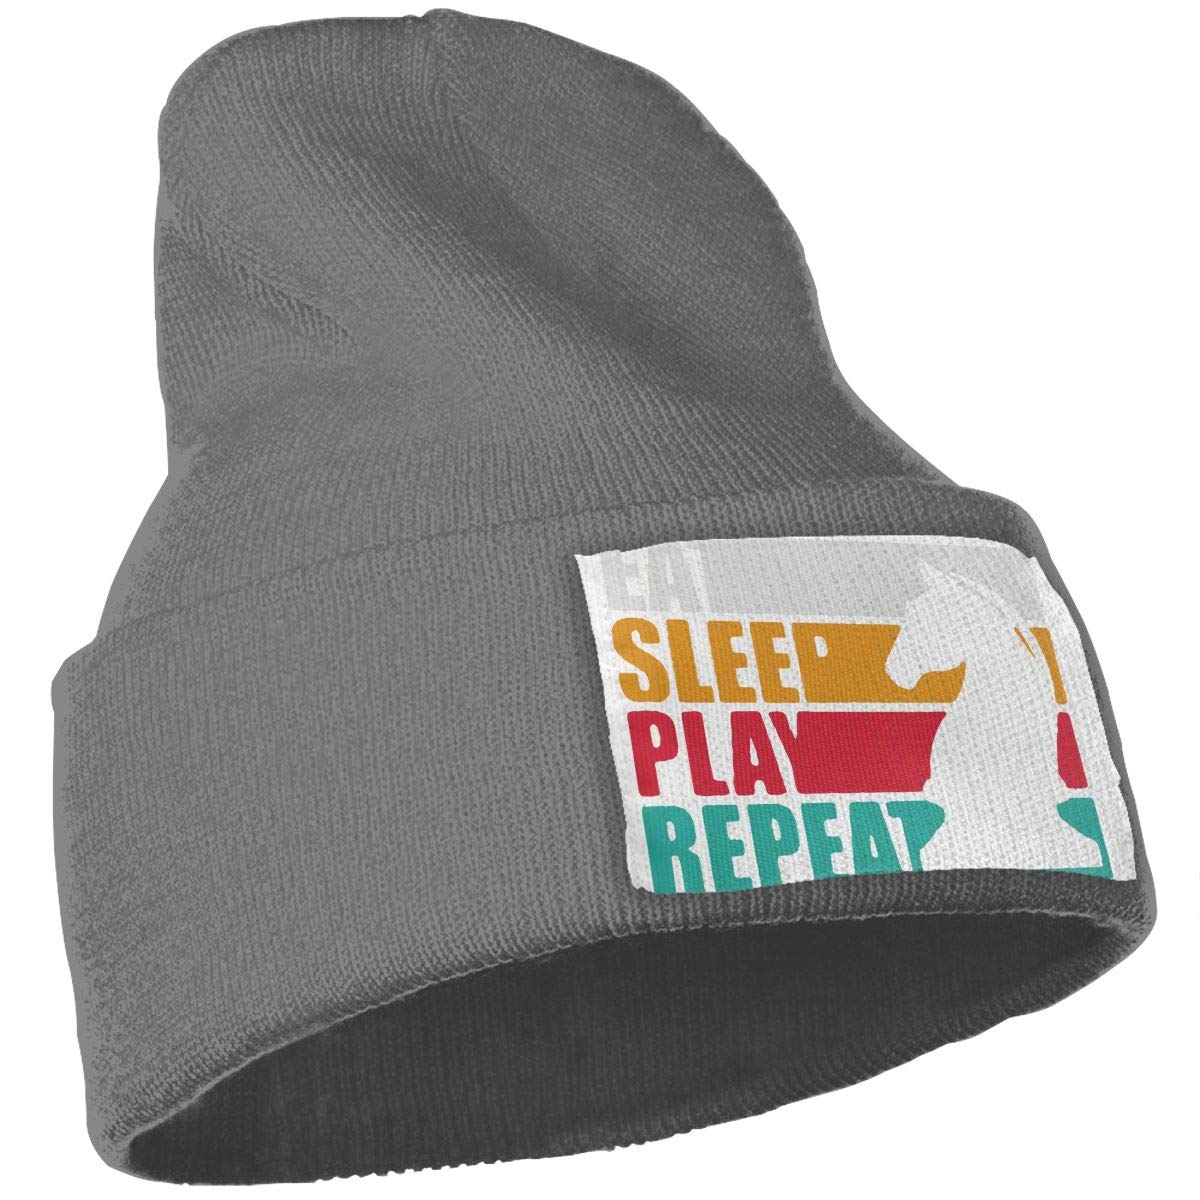 TAOMAP89 Eat Sleep Chess Repeat Women and Men Skull Caps Winter Warm Stretchy Knit Beanie Hats